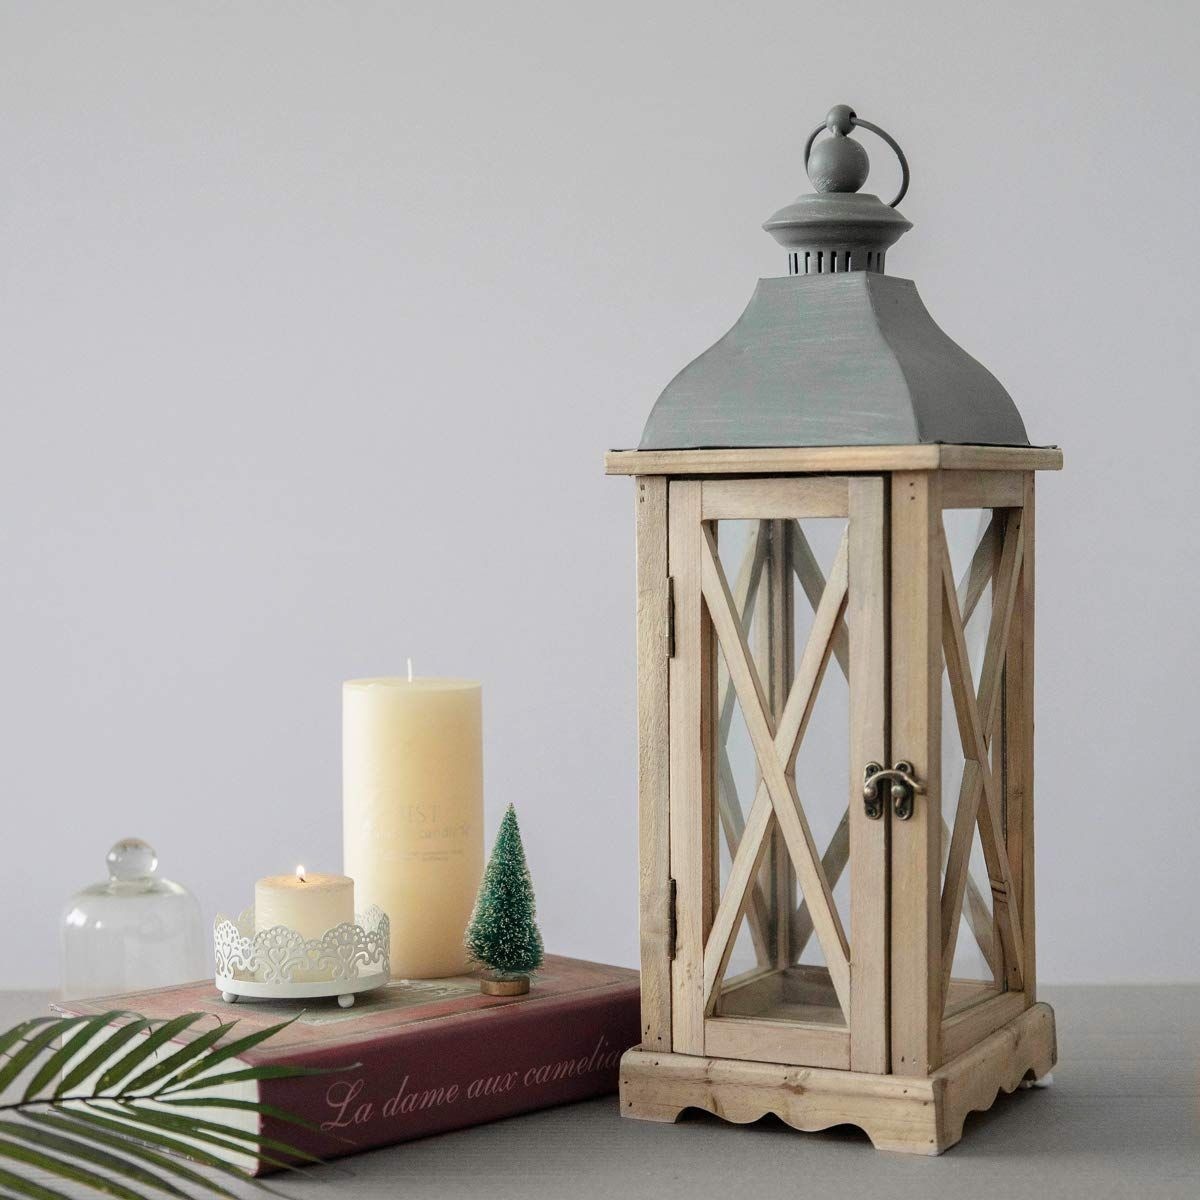 1560499823 296 15 beautiful outdoor lanterns to brighten up your evenings - 15 Beautiful Outdoor Lanterns To Brighten Up Your Evenings